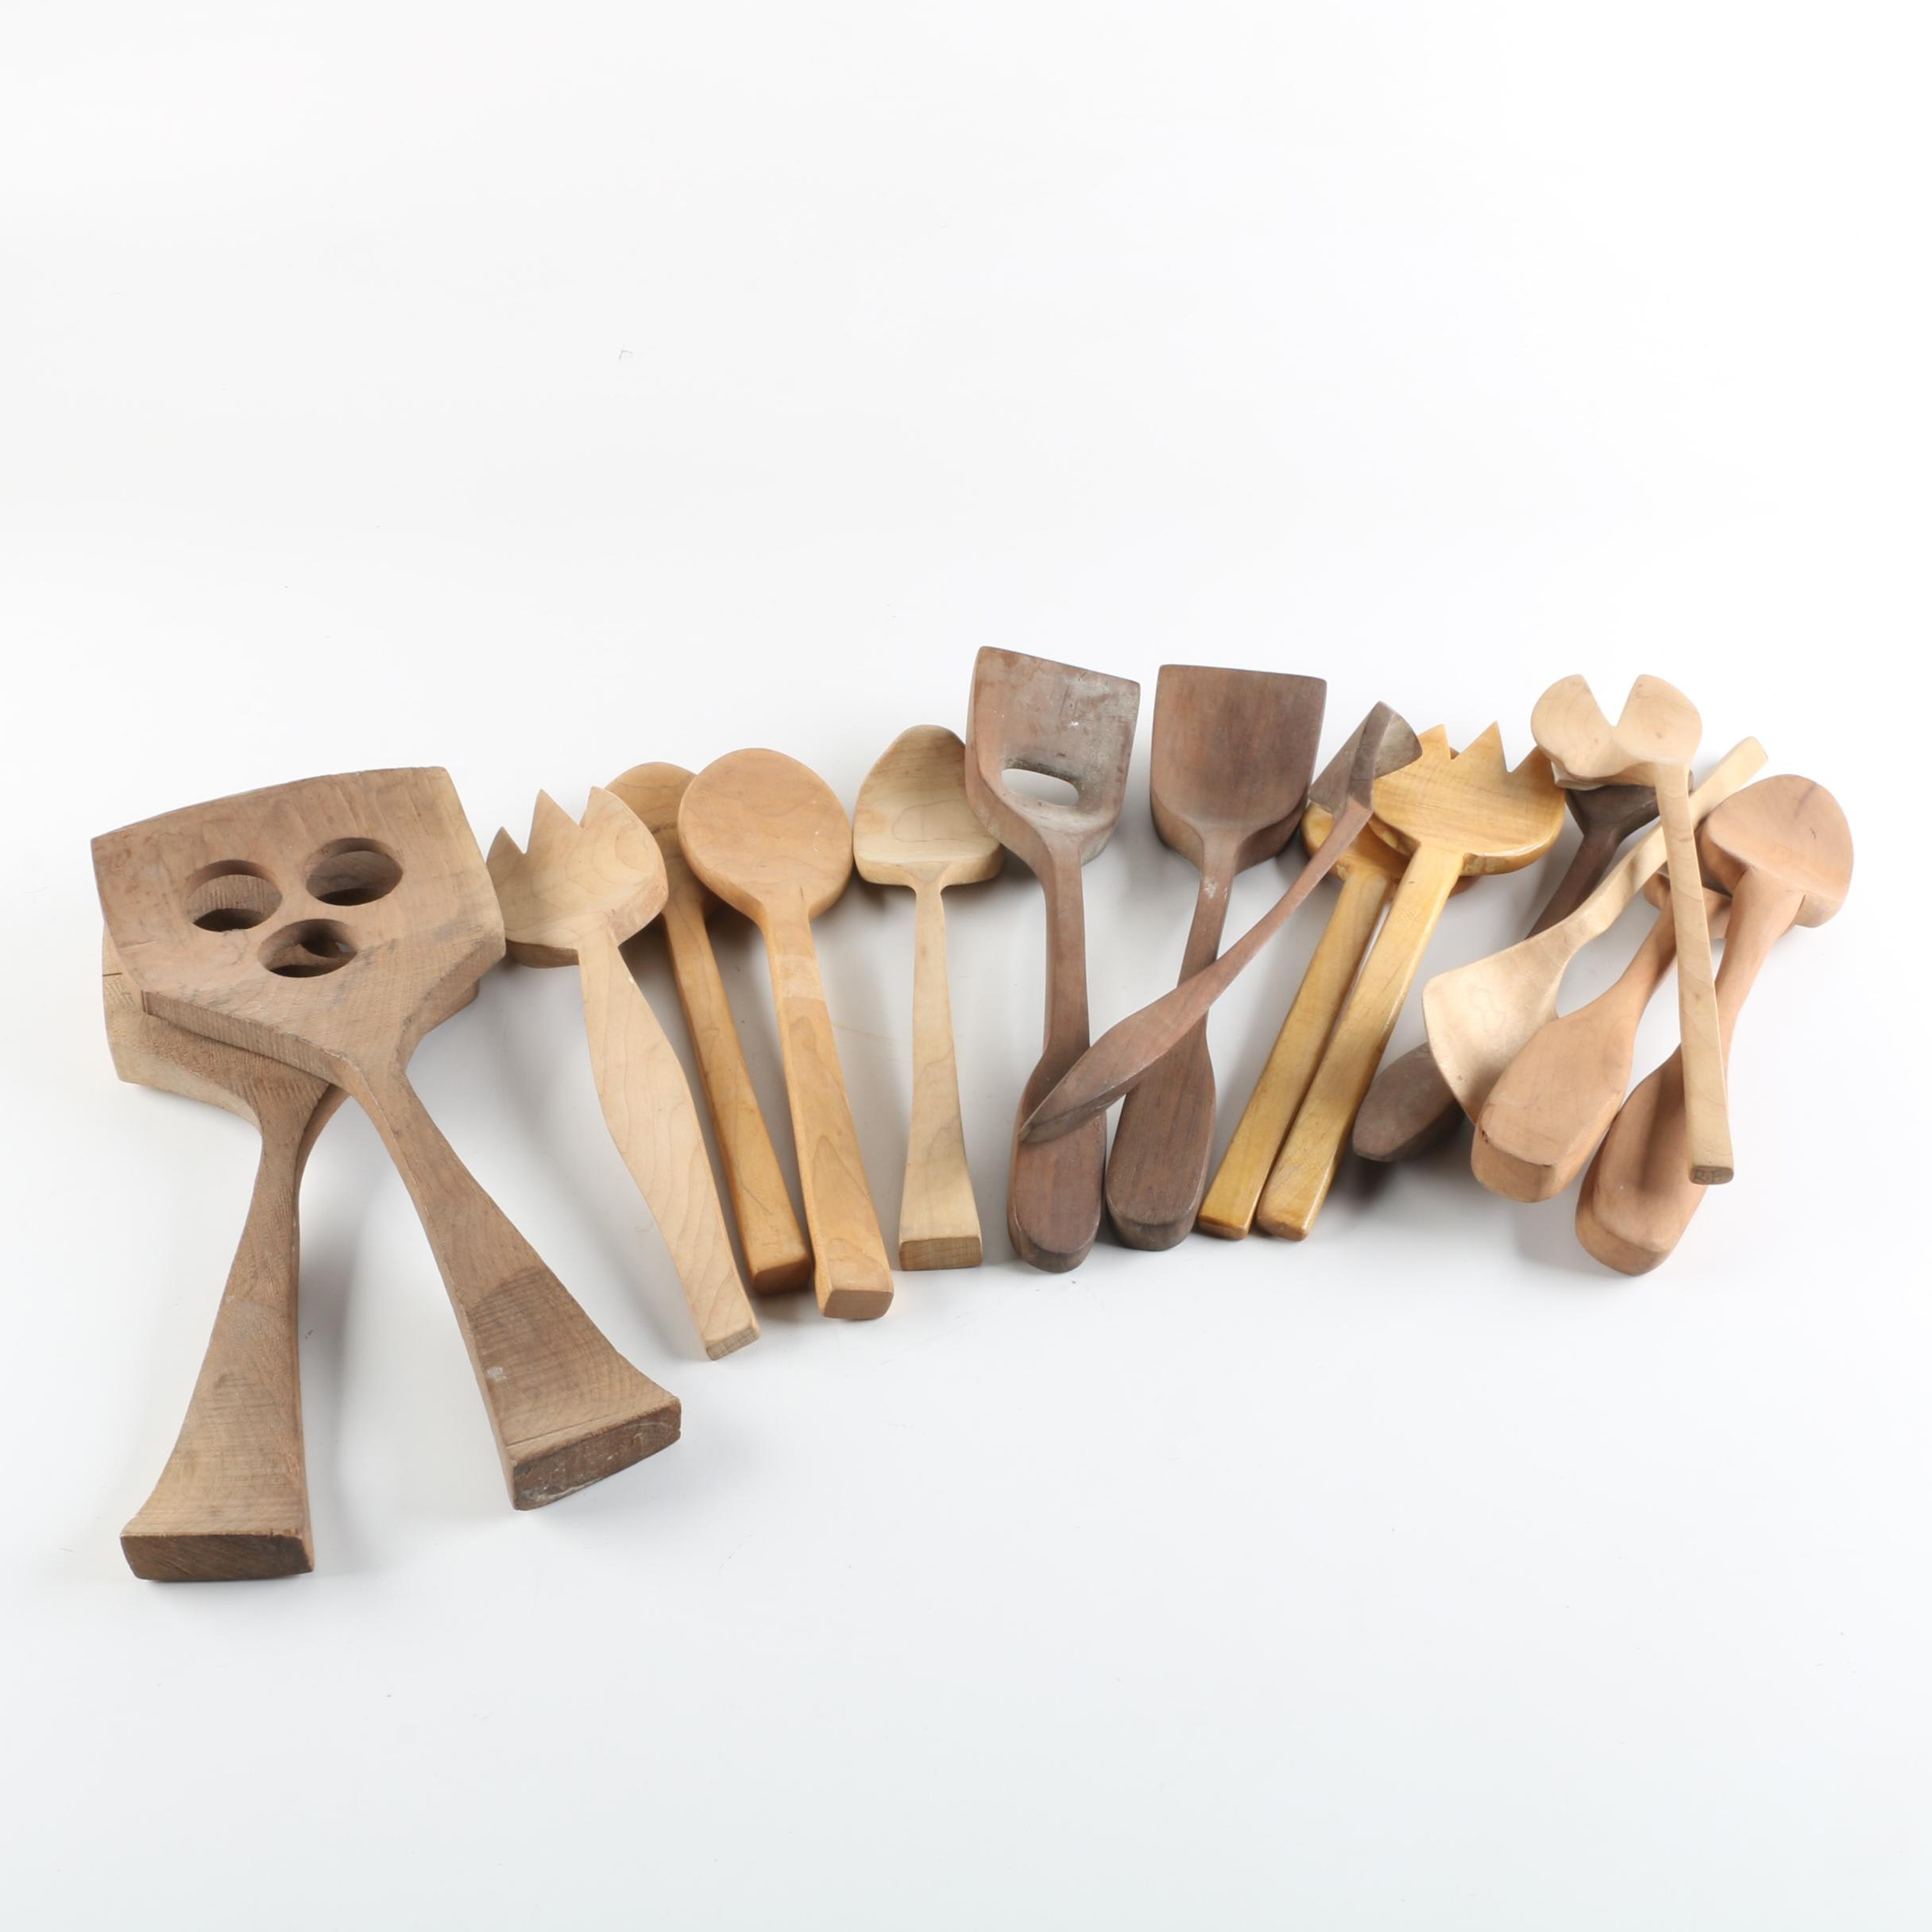 Carved Wood Kitchen Utensils